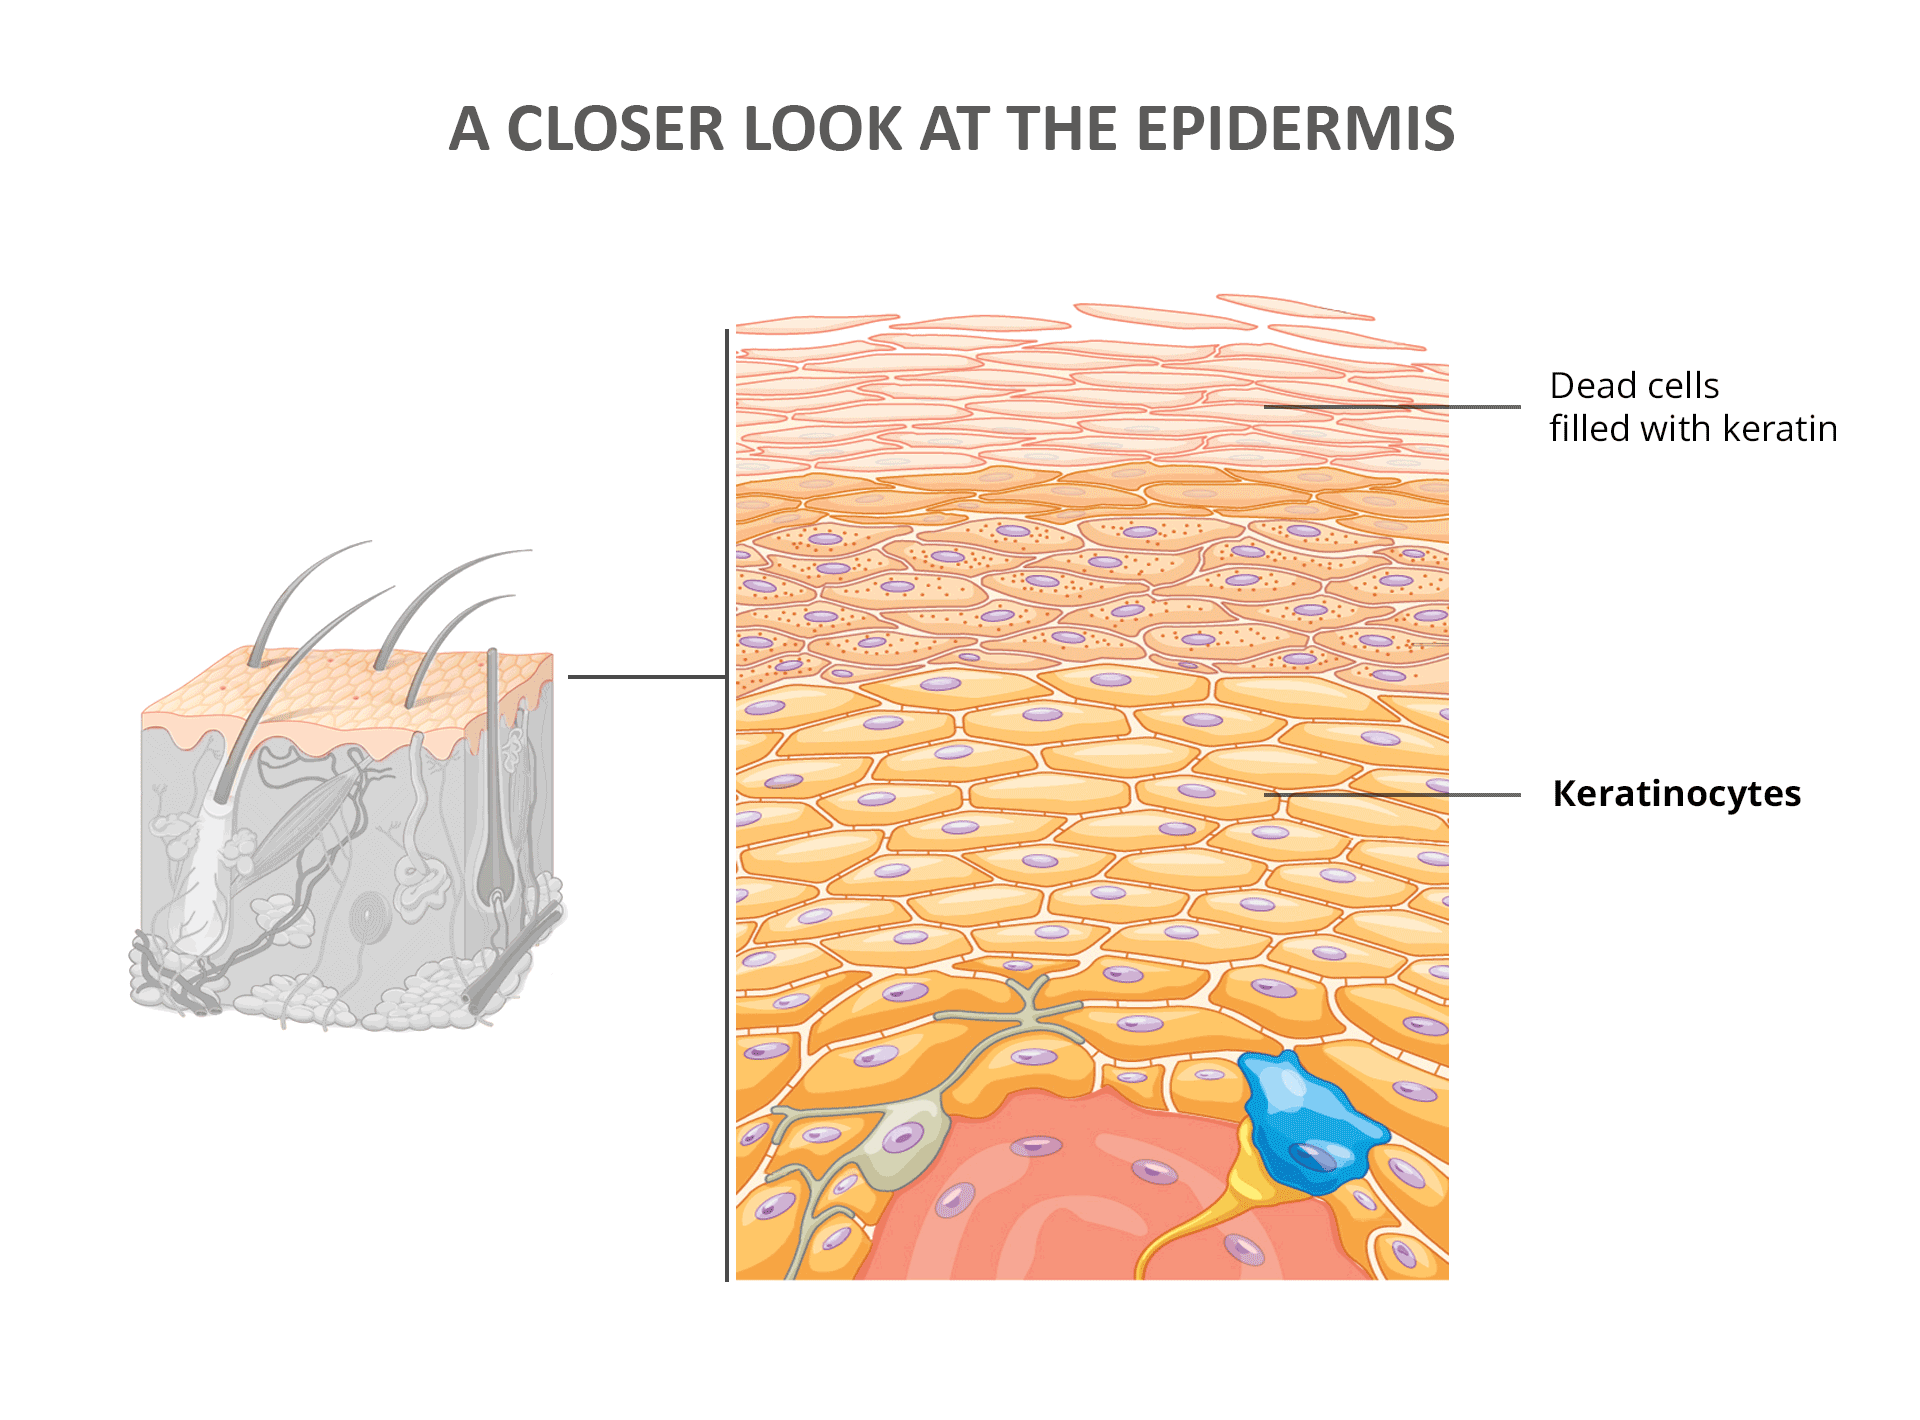 A Closer Look at the Epidermis - Kertatinocytes